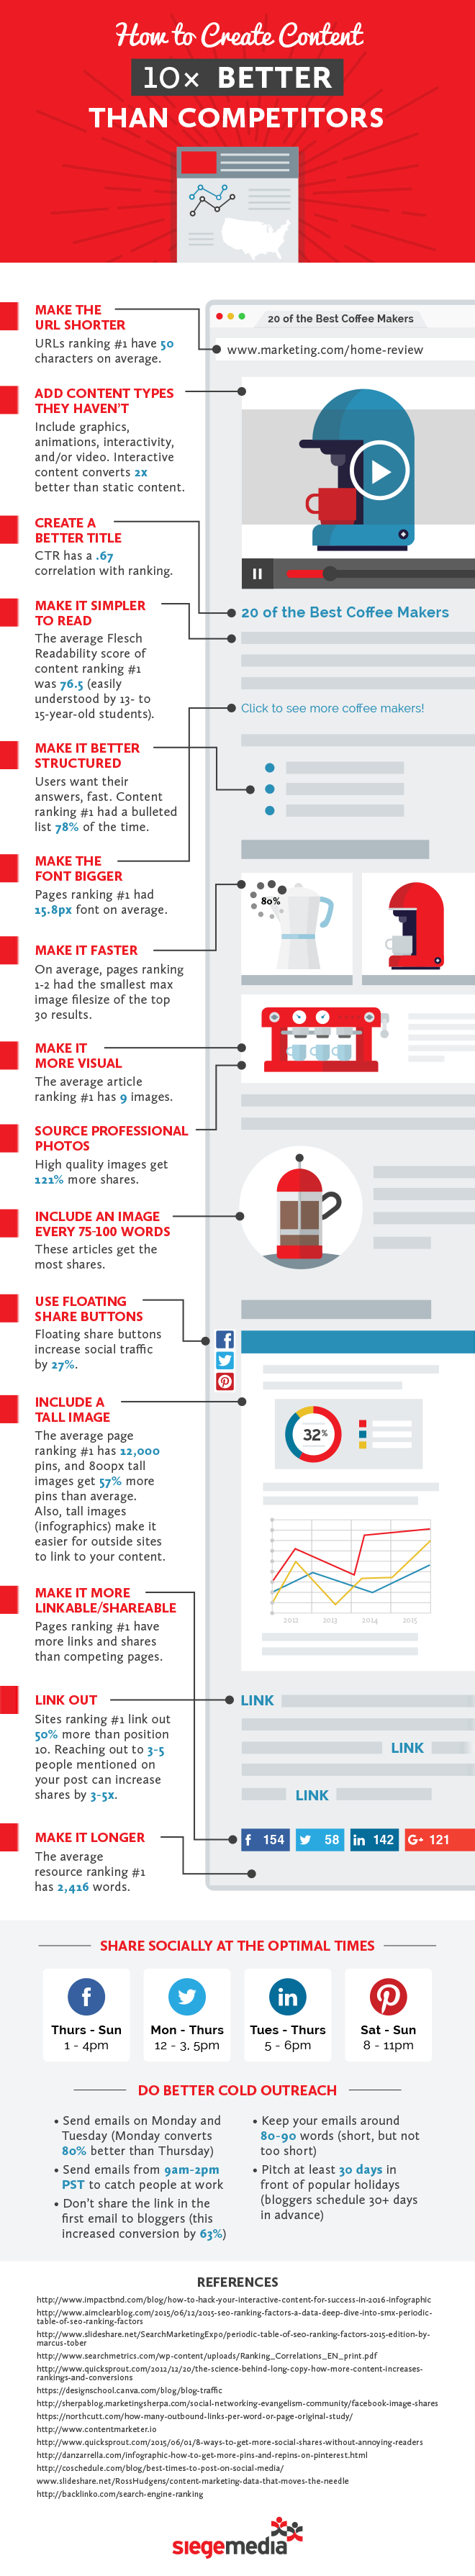 How to Create Content 10x Better Than Your Competitors [Infographic]